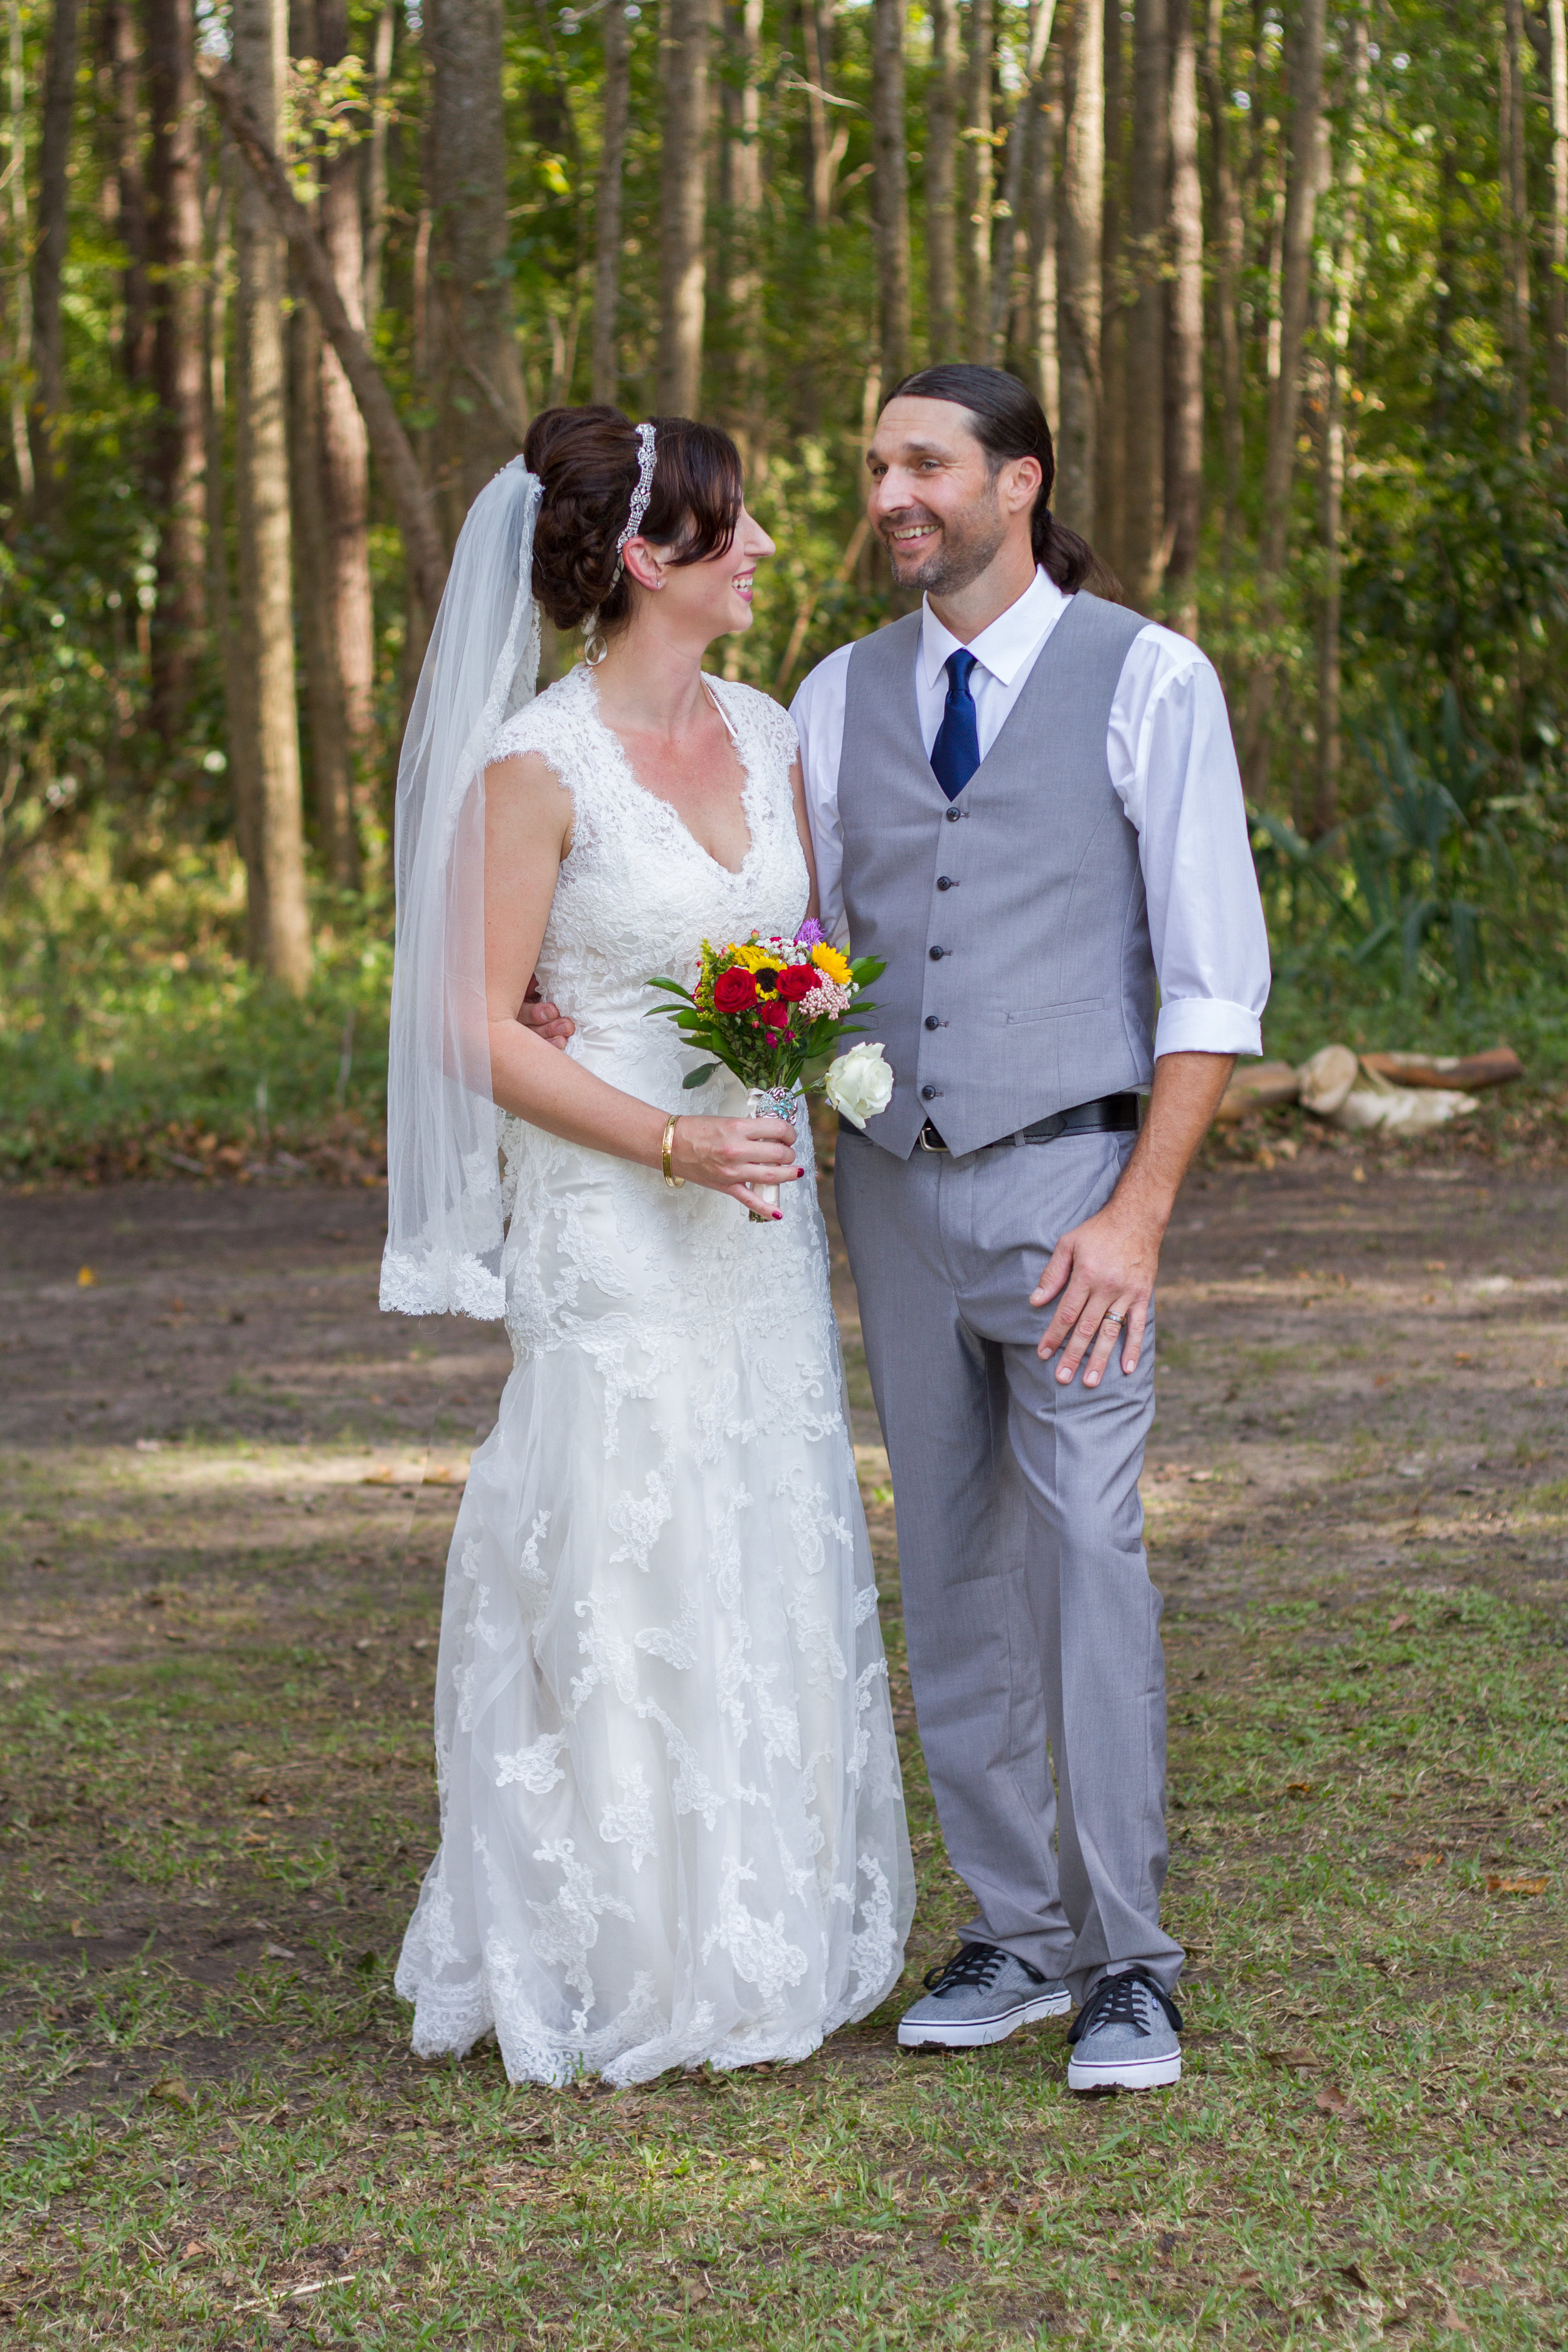 Jacqueline and Shawn Wedding (270 of 597).jpg